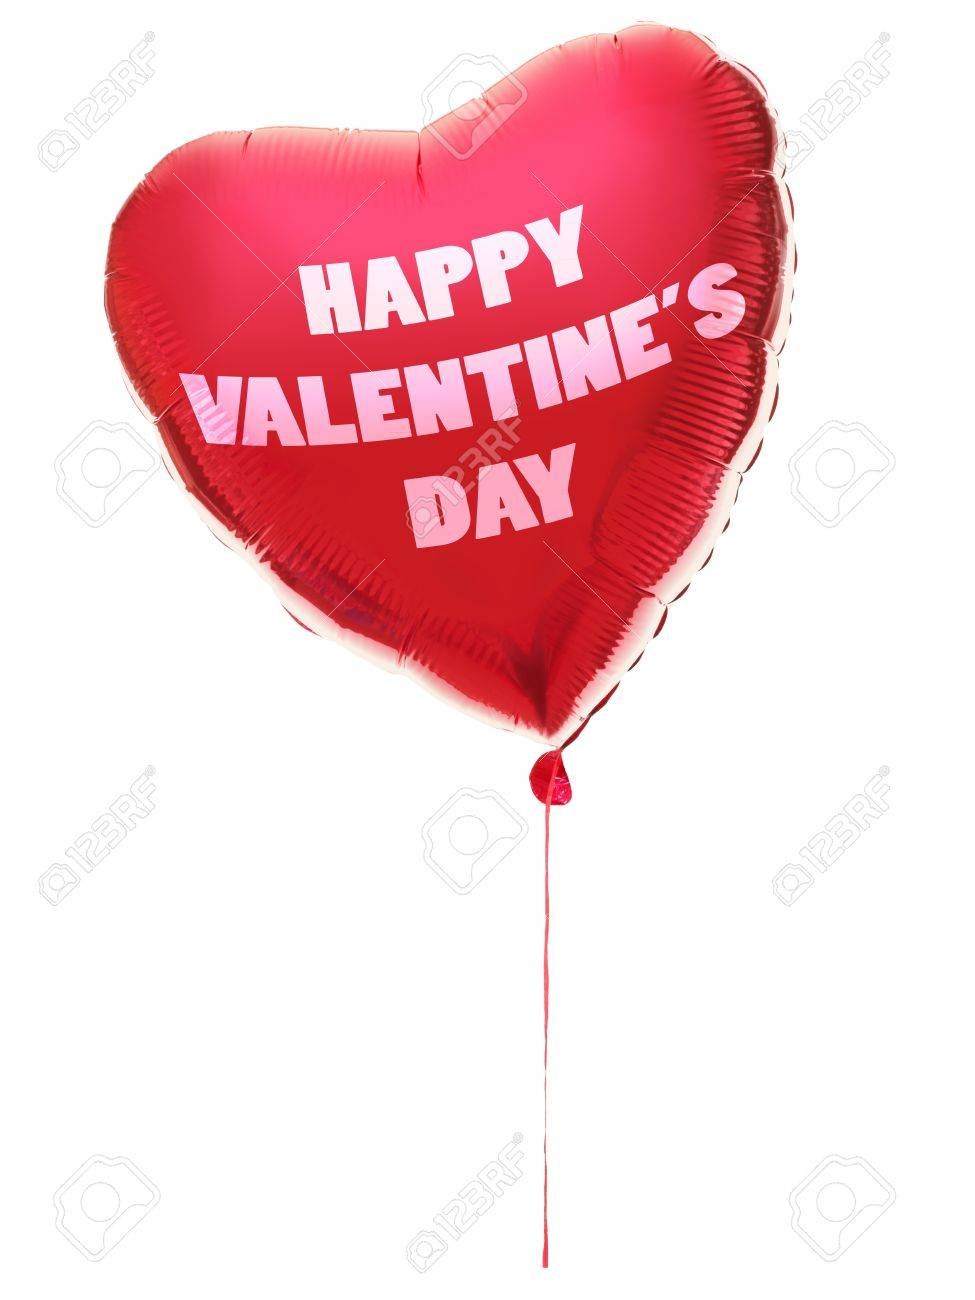 valentines day balloon heart shaped with text: happy valentines day. Red heart Isolated on white background. Stock Photo - 8591270